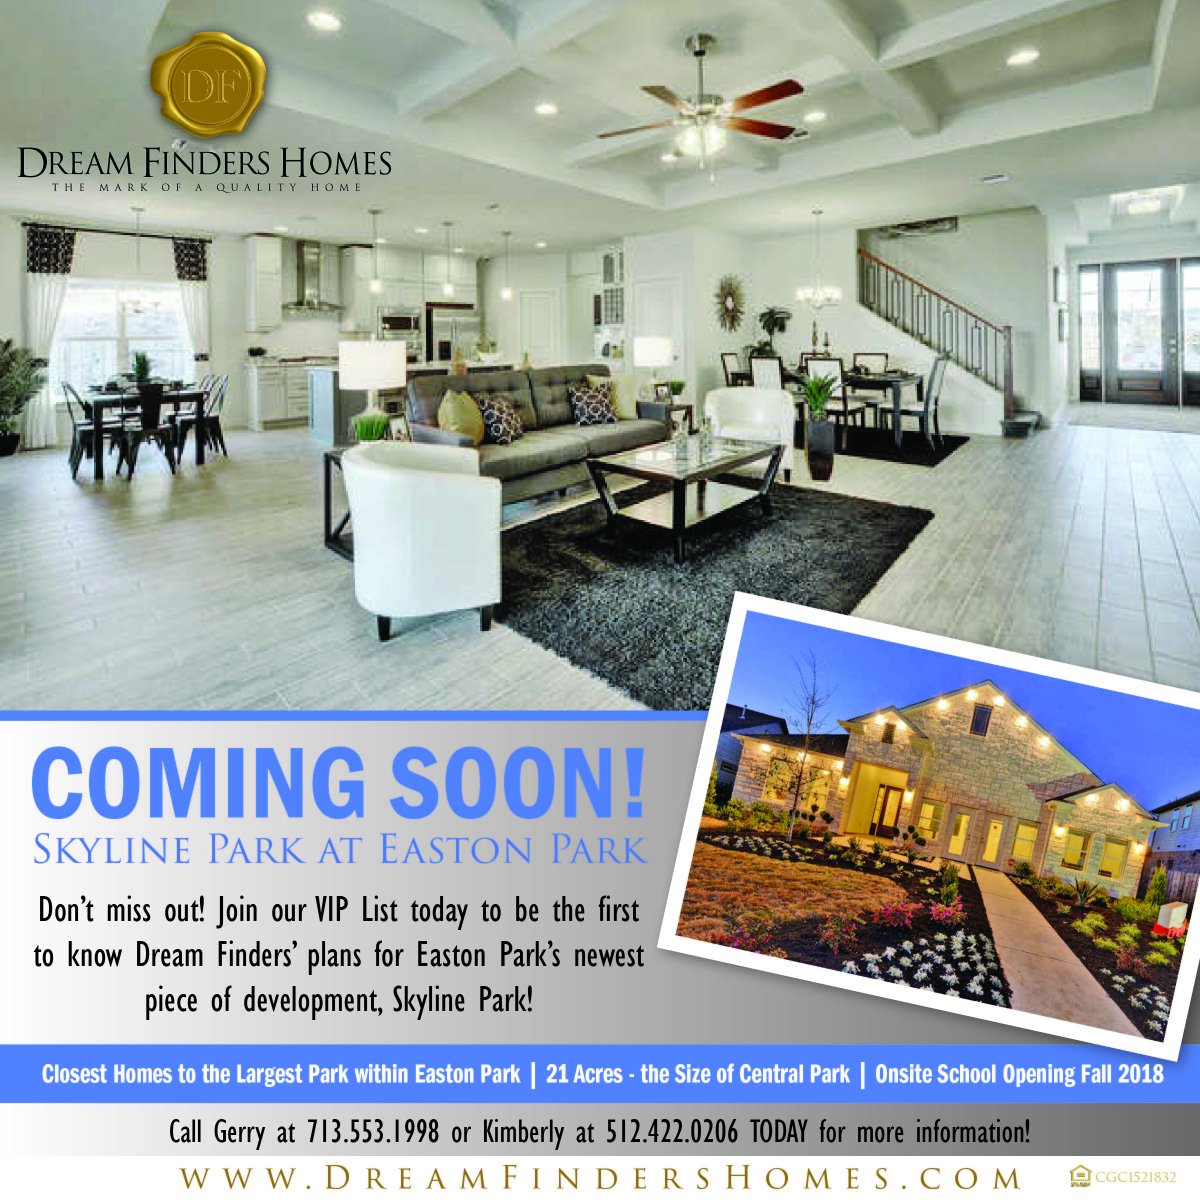 To Know Dream Finders Plans For Easton Park S Newest Piece Of Development Skyline More Information Please Contact Gerry At 713 553 1998 Or